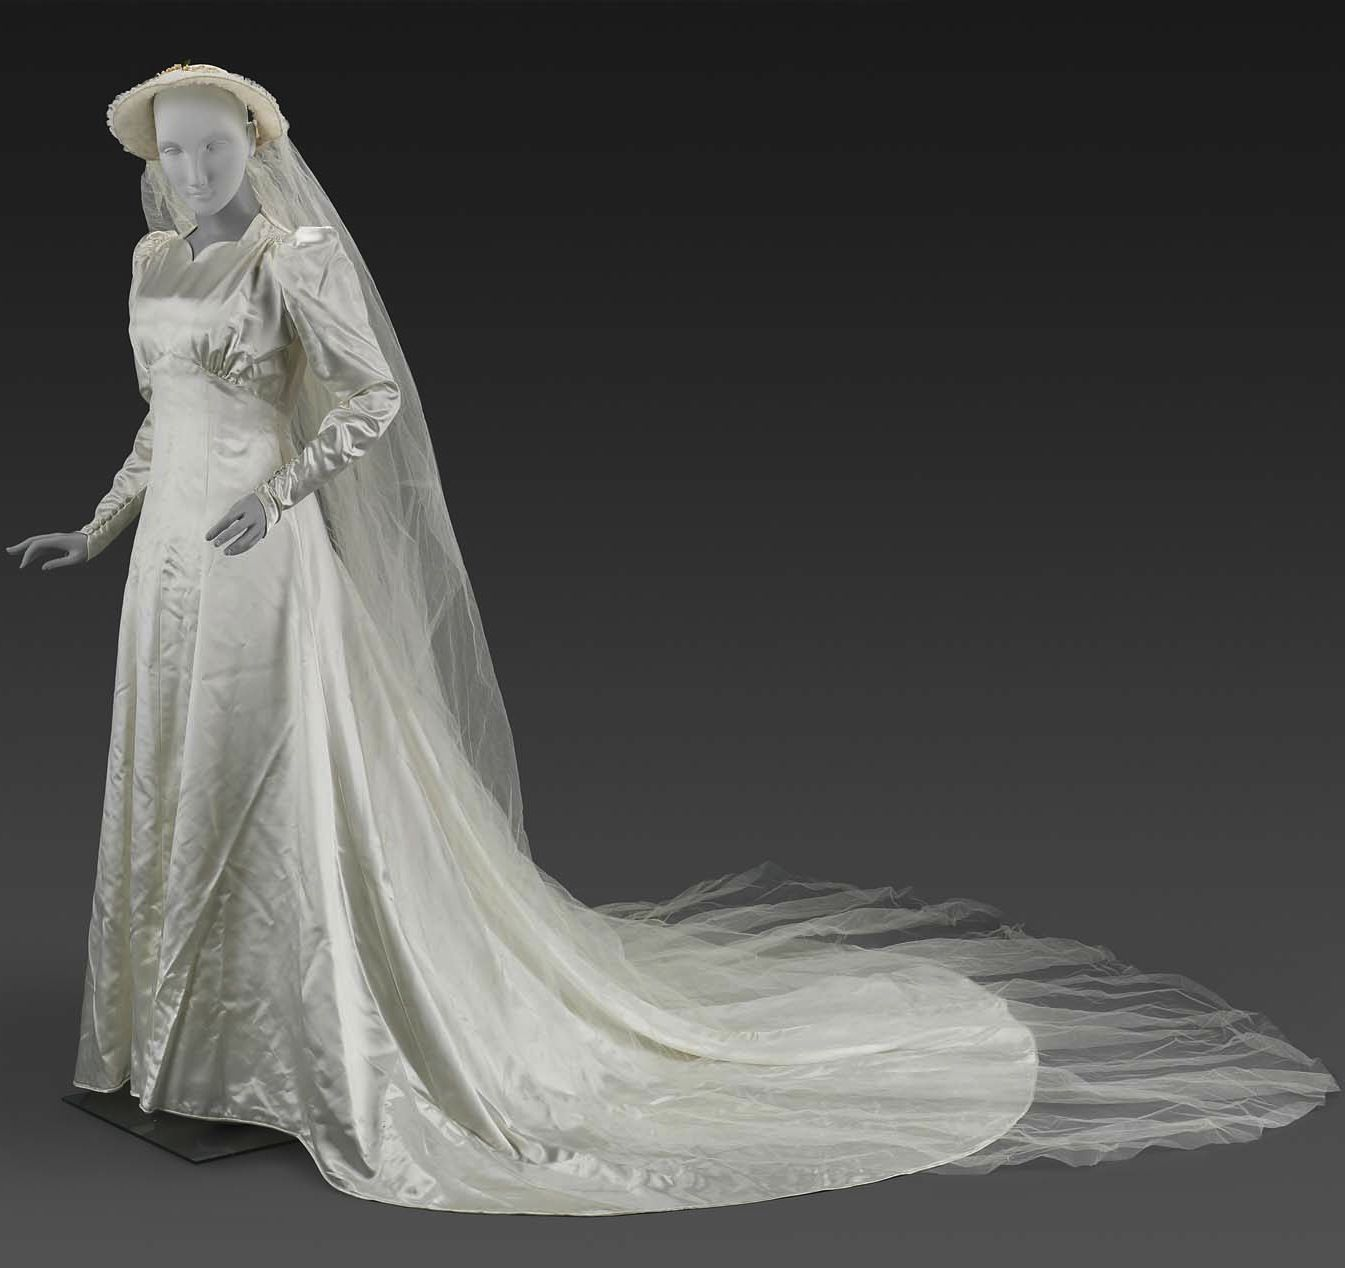 Woman S Wedding Dress Dress And Veil Made For Filenes Department Store Boston About 1938 Dre Womens Wedding Dresses Wedding Gowns Vintage Wedding Dresses